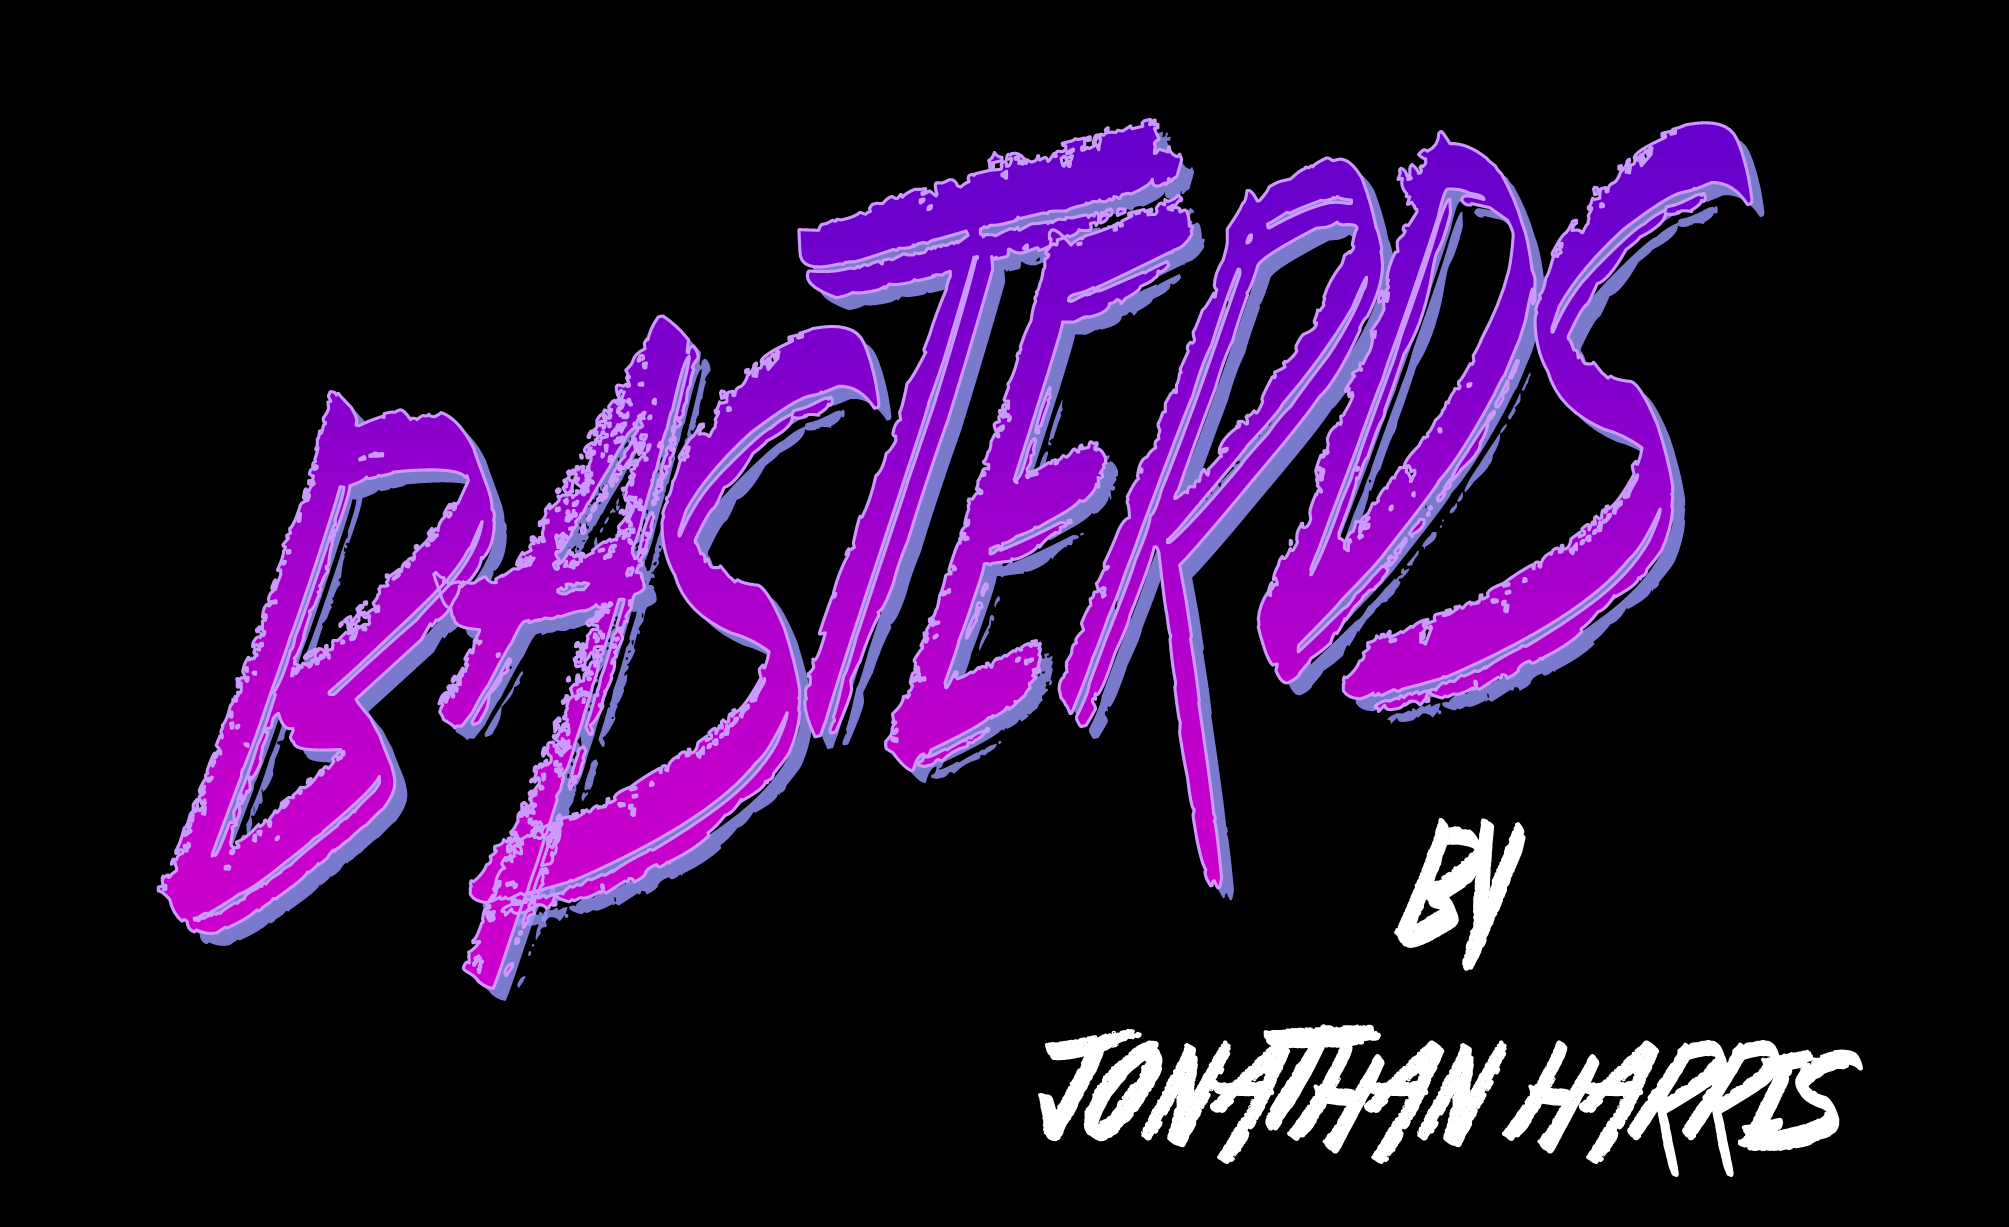 Basterds Font - FontSpace